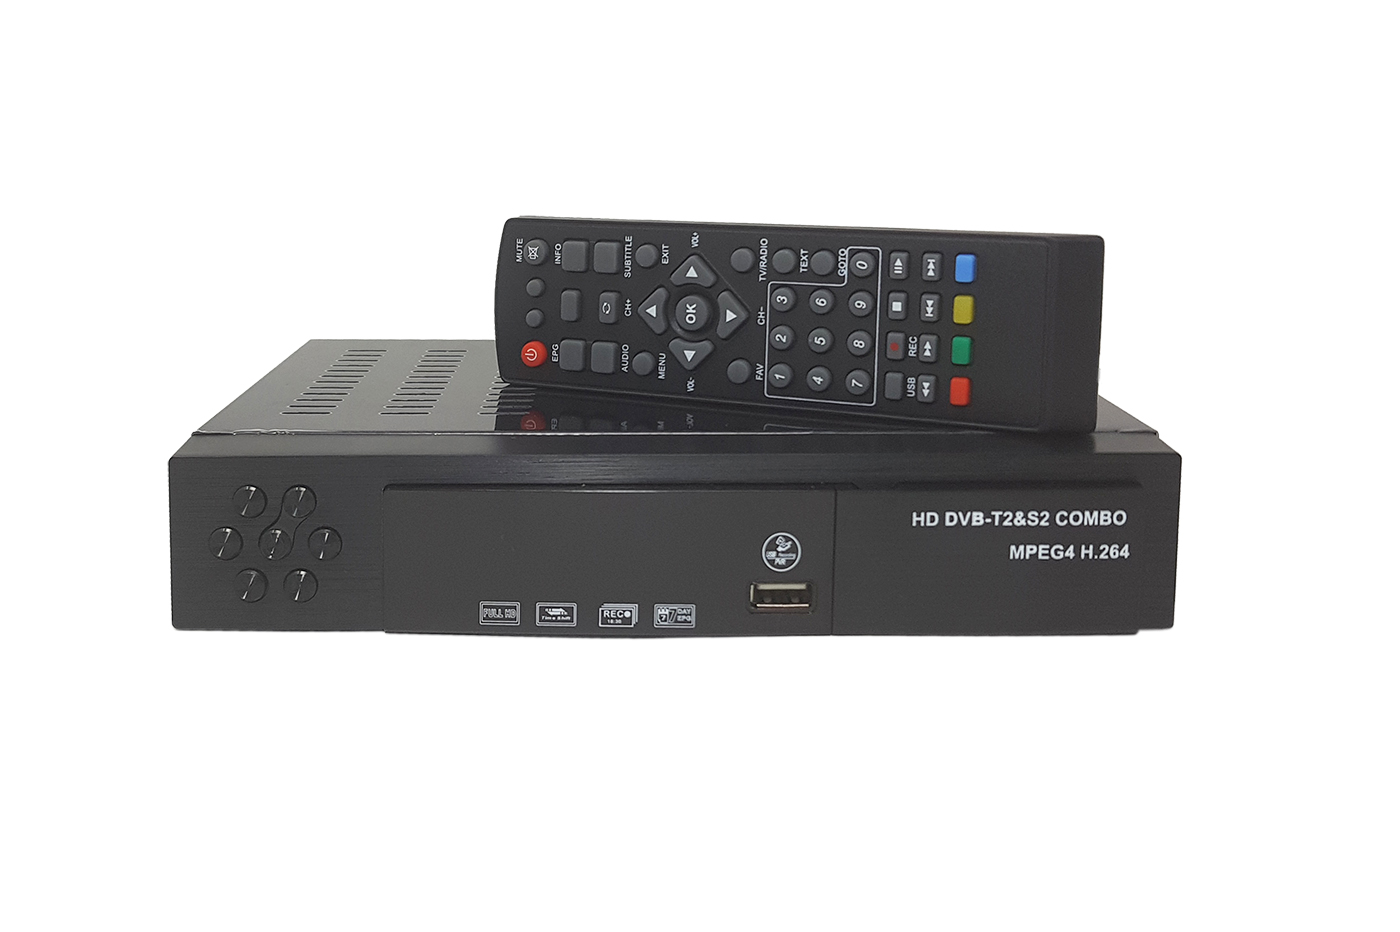 Decoder digitale combo full hd terrestre satellitare 1080p dvb T2 S2